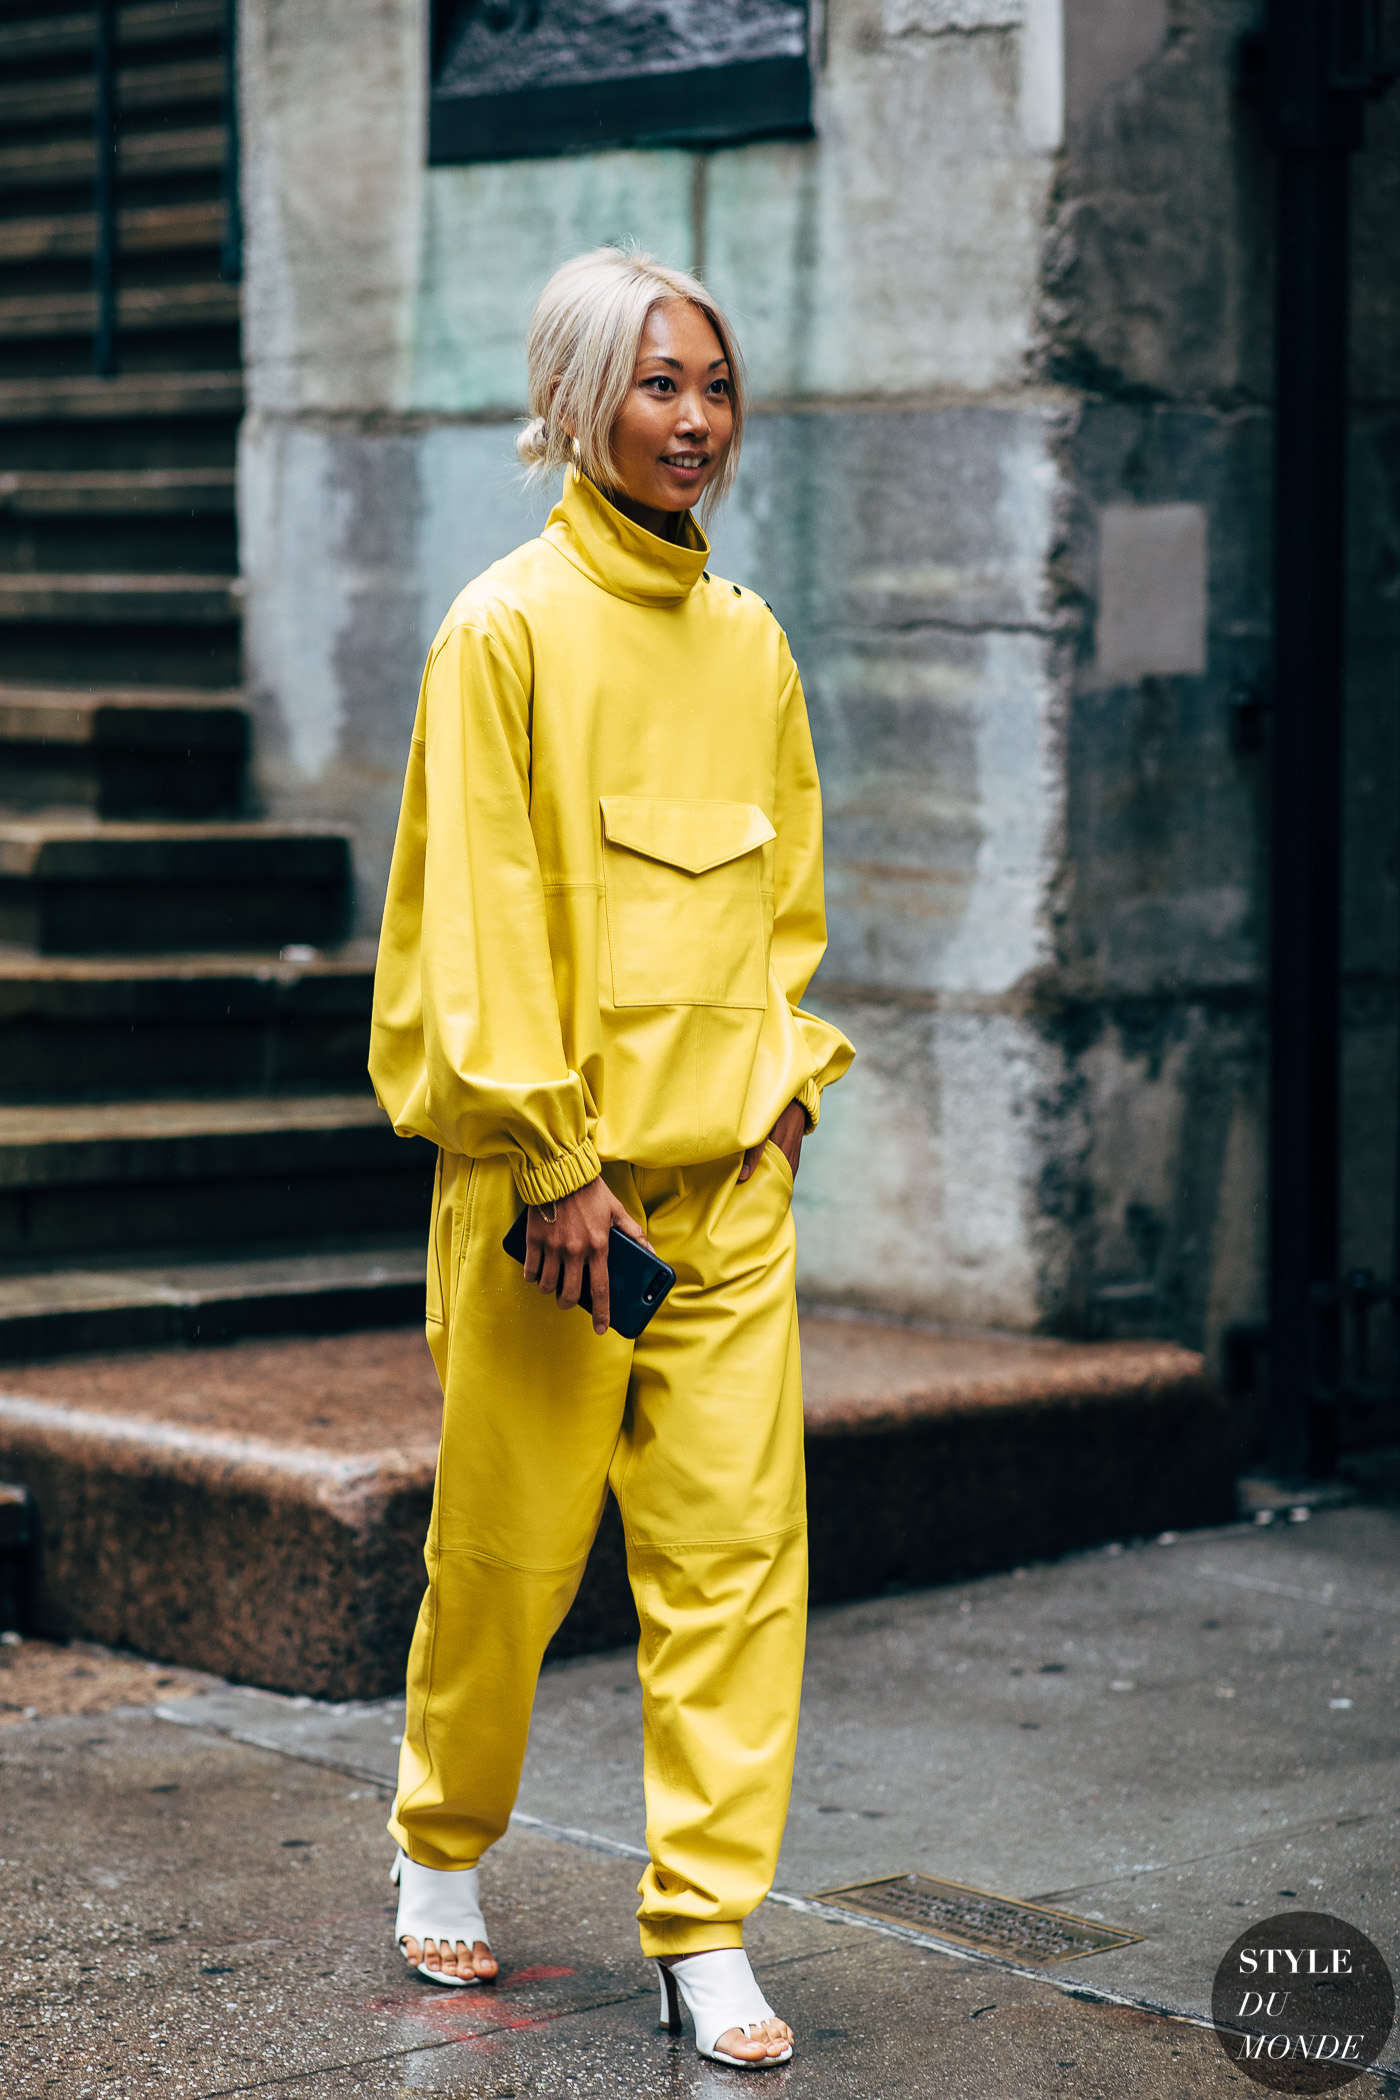 2475861a56 ... Photography20180909_48A9413 Vanessa Hong by STYLEDUMONDE Street Style  Fashion Photography20180909_48A9404 ...